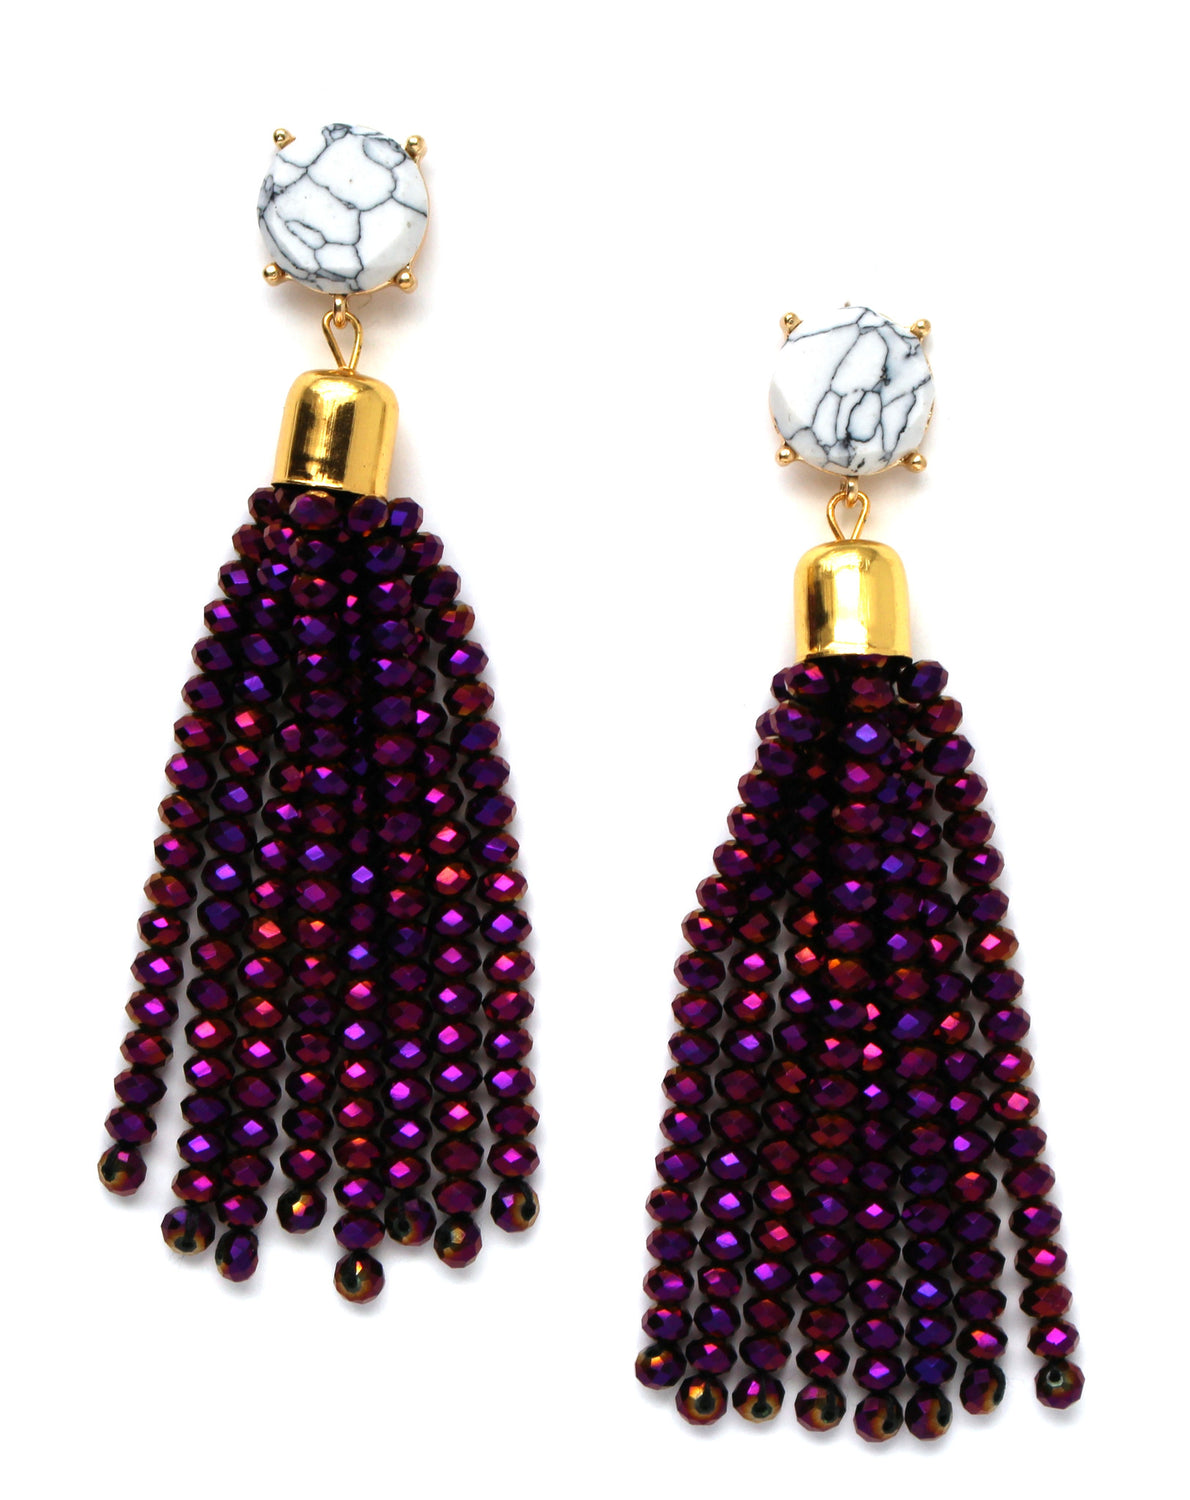 Sweet Treat Jeweled Tassel Earrings- Purple Multi